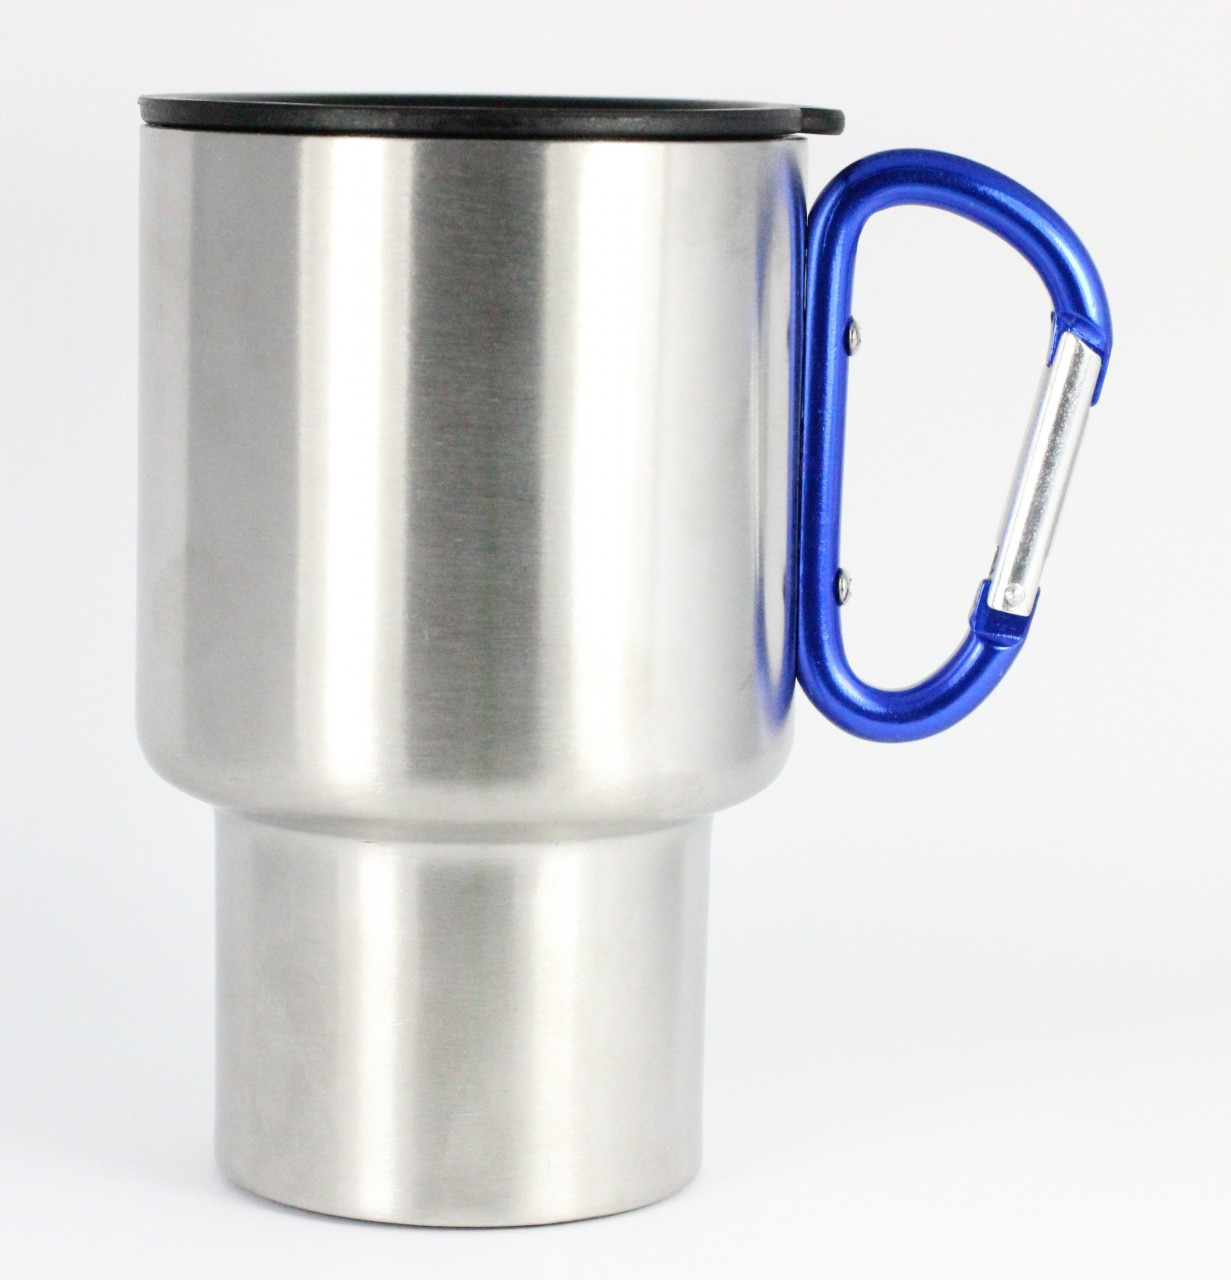 Stainless Steel Travel Mug Blue Handle 14 Oz Ags Brands